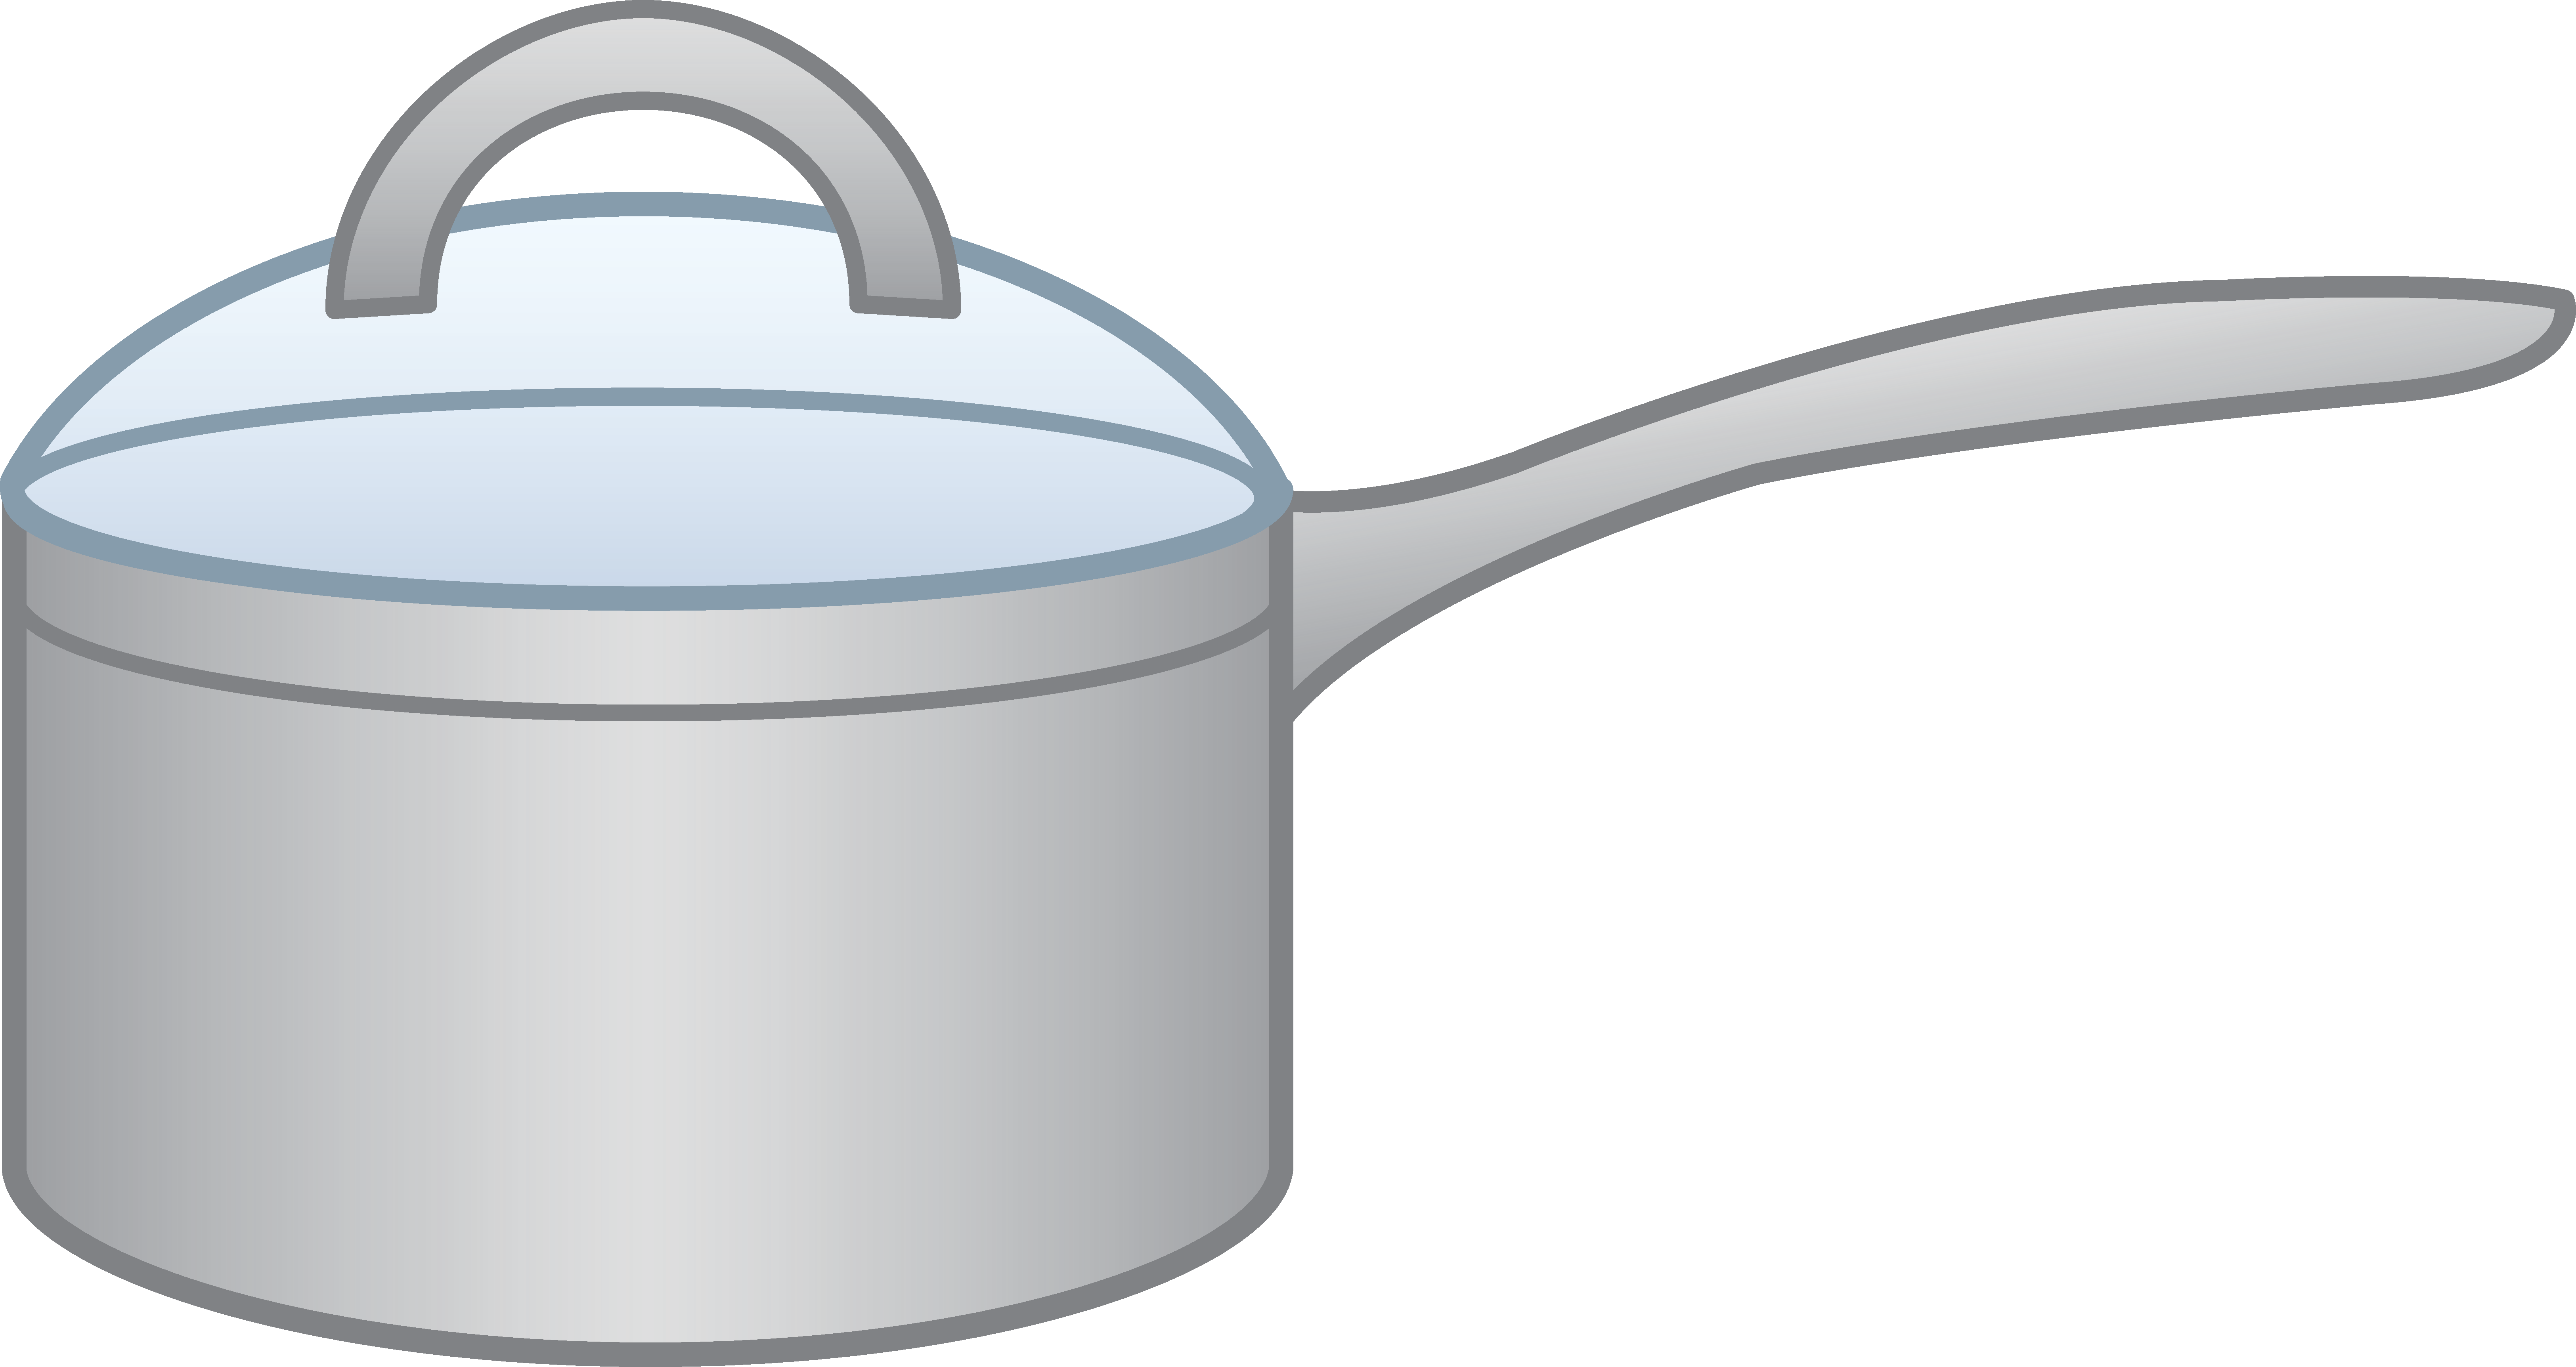 Picture clipart kitchen. Cooking pot drawing at